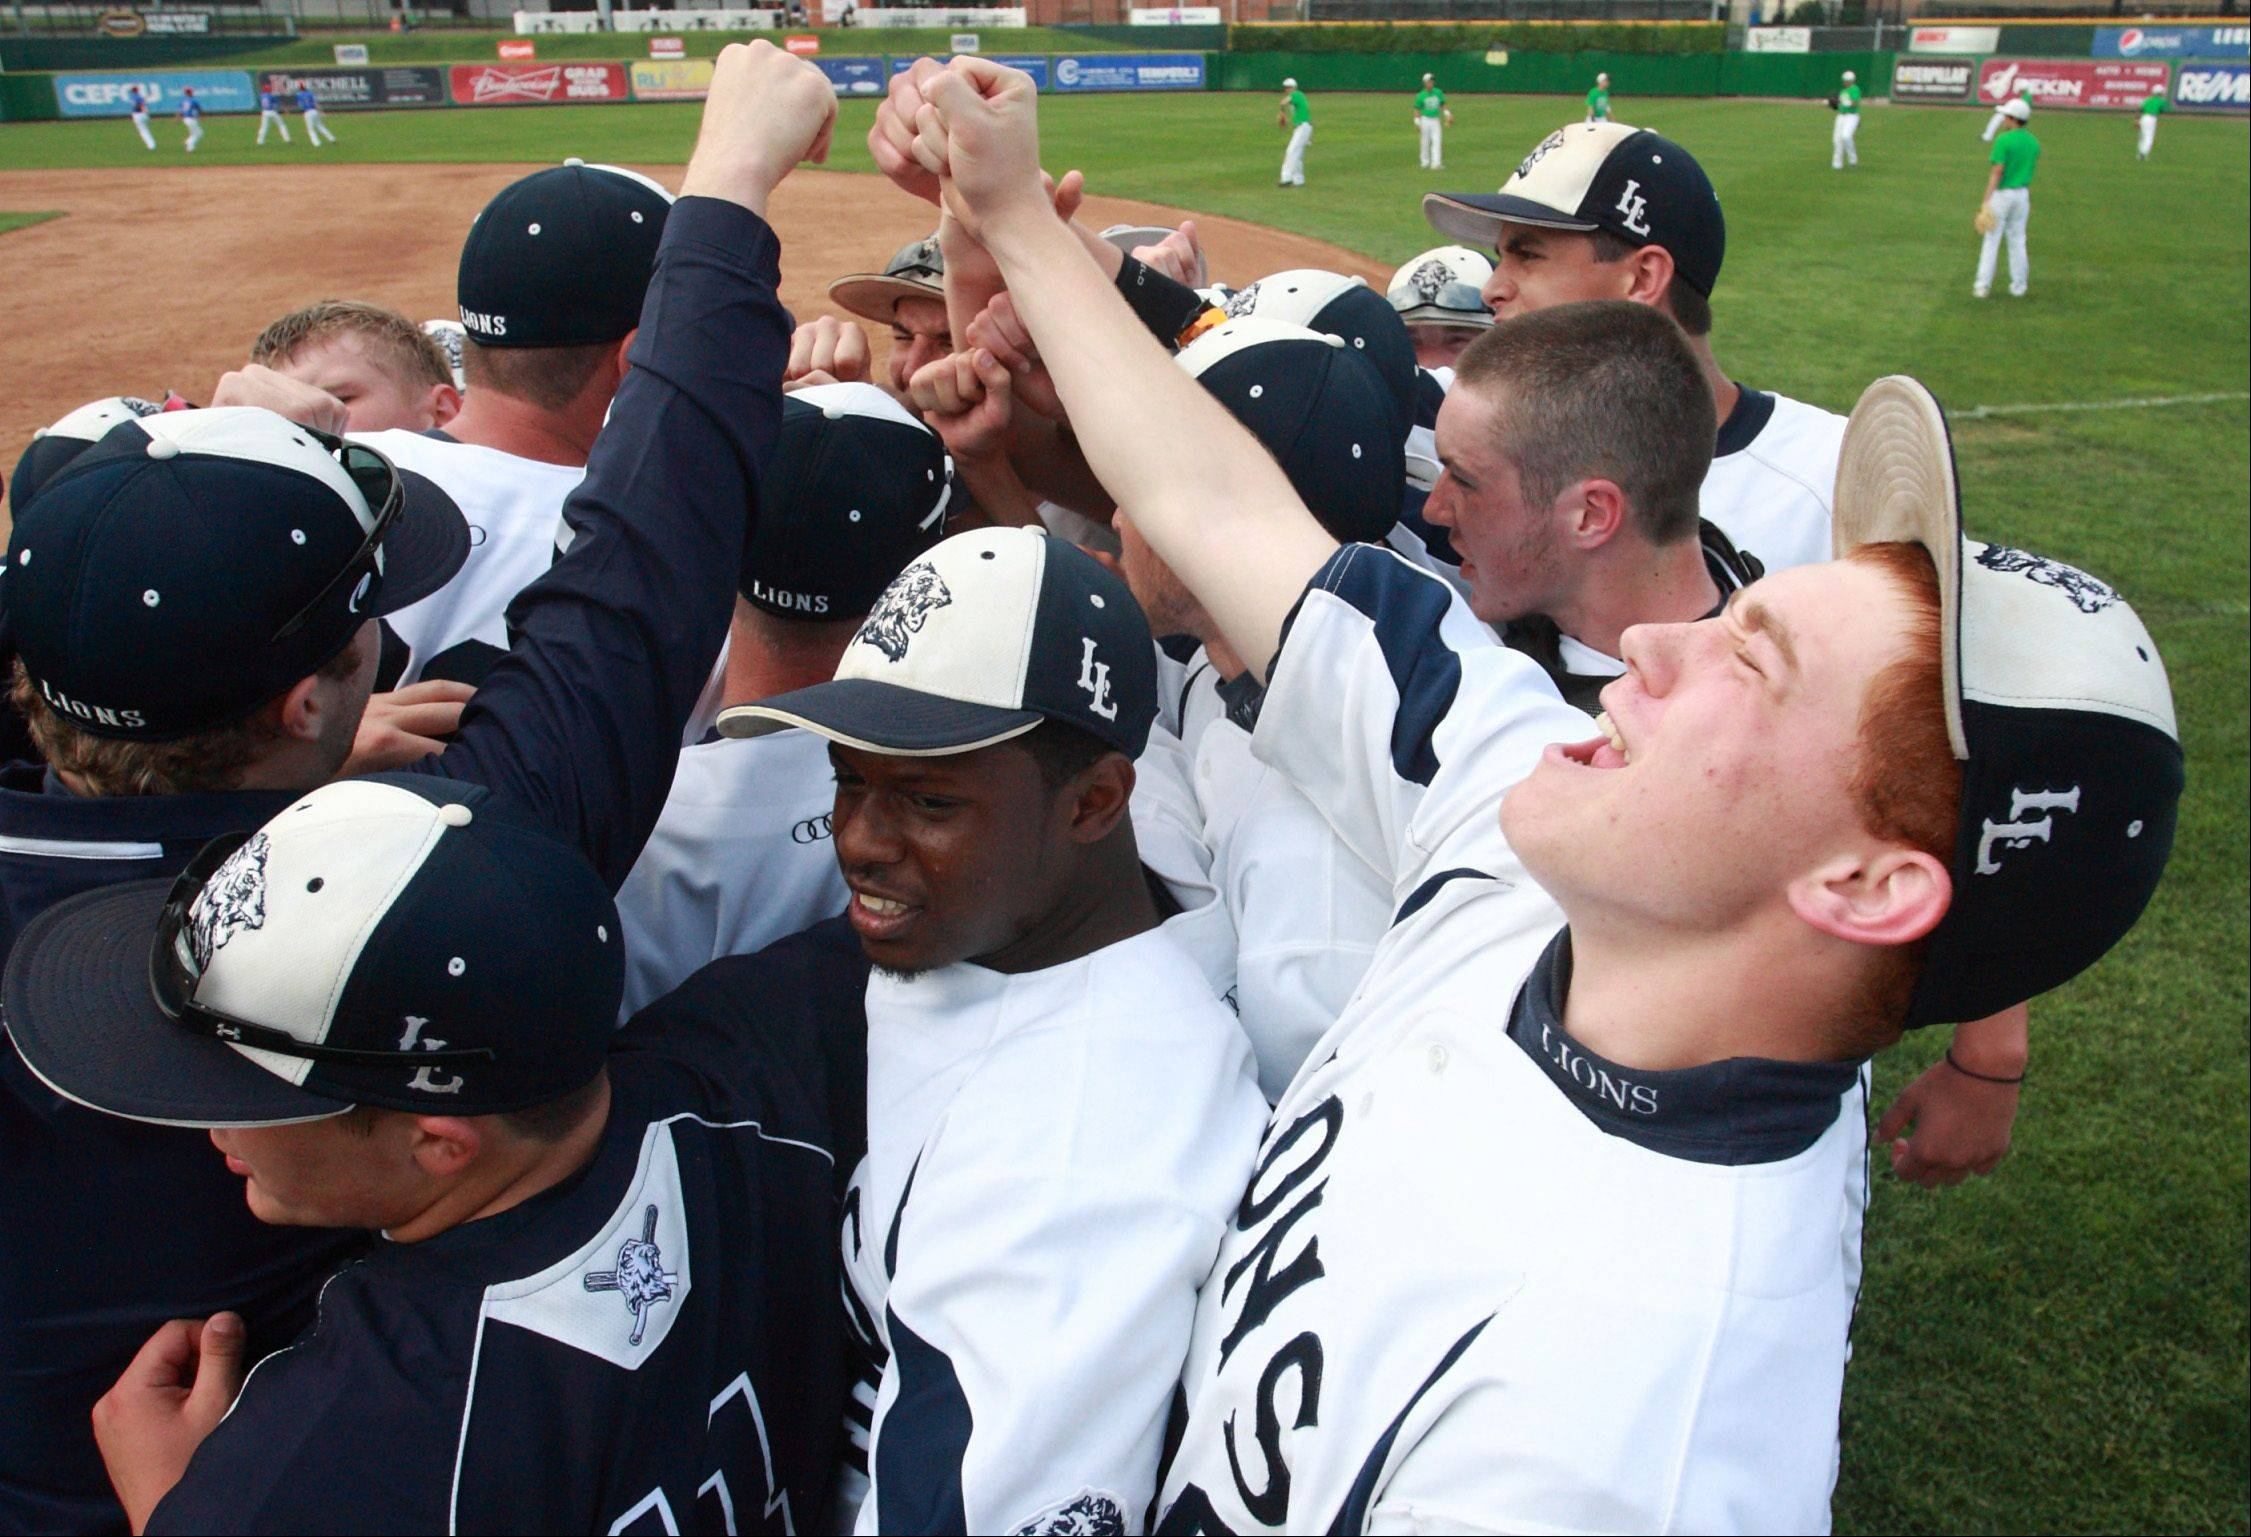 Lisle's Alex Ventrella celebrates the Lions' IHSA state semifinal baseball victory over Teutopolis with his team. The Lions defeated the Wooden Shoes 2-1 to advance to Saturday's title game at Dozer Park in Peoria.